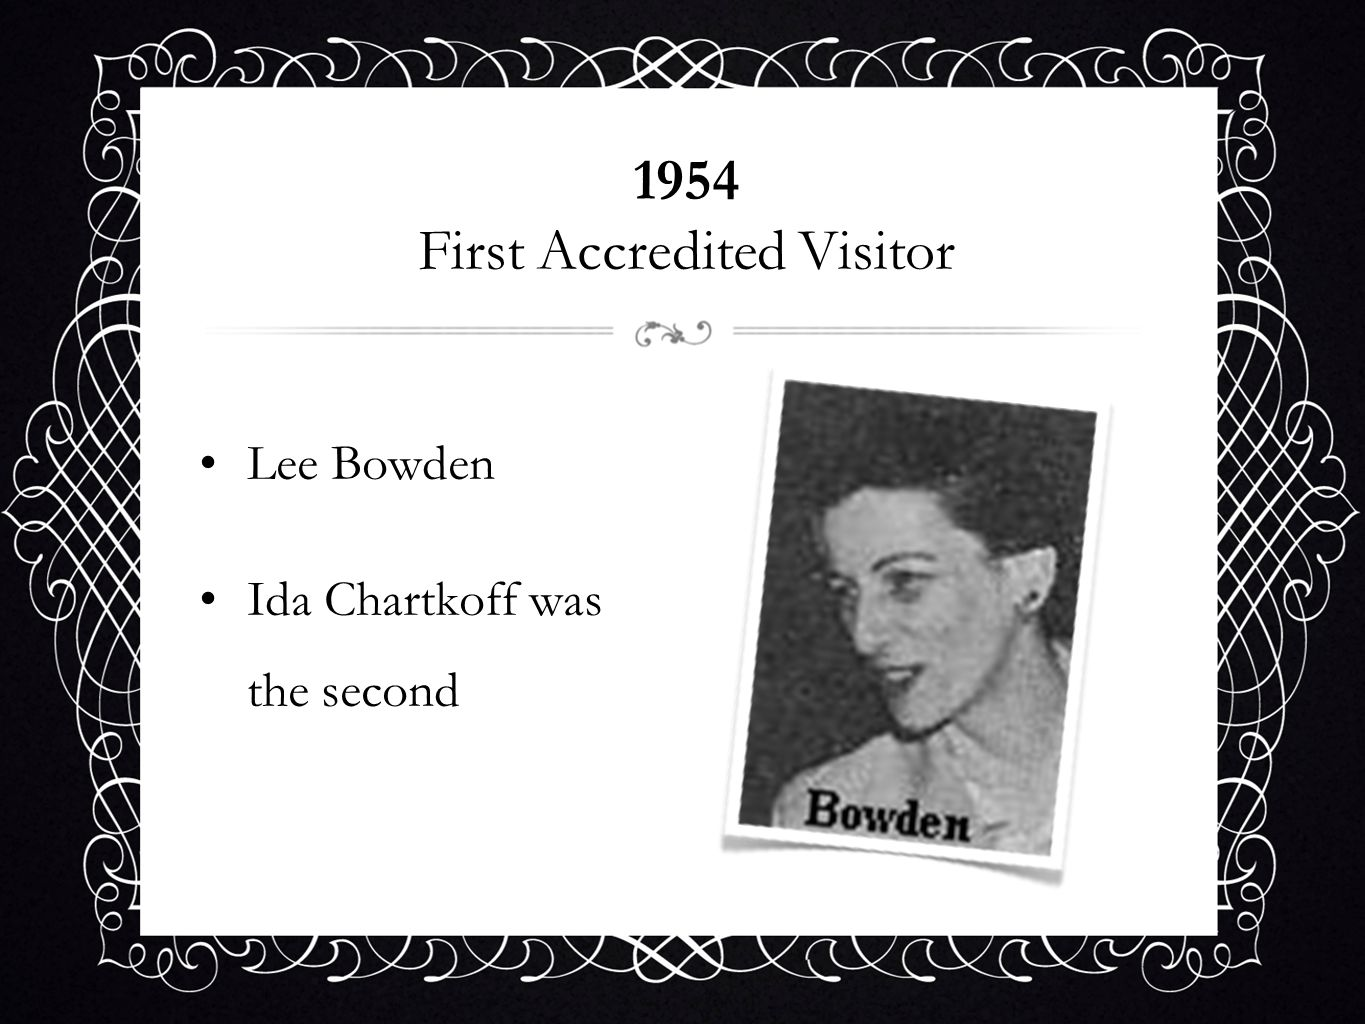 1954 First Accredited Visitor